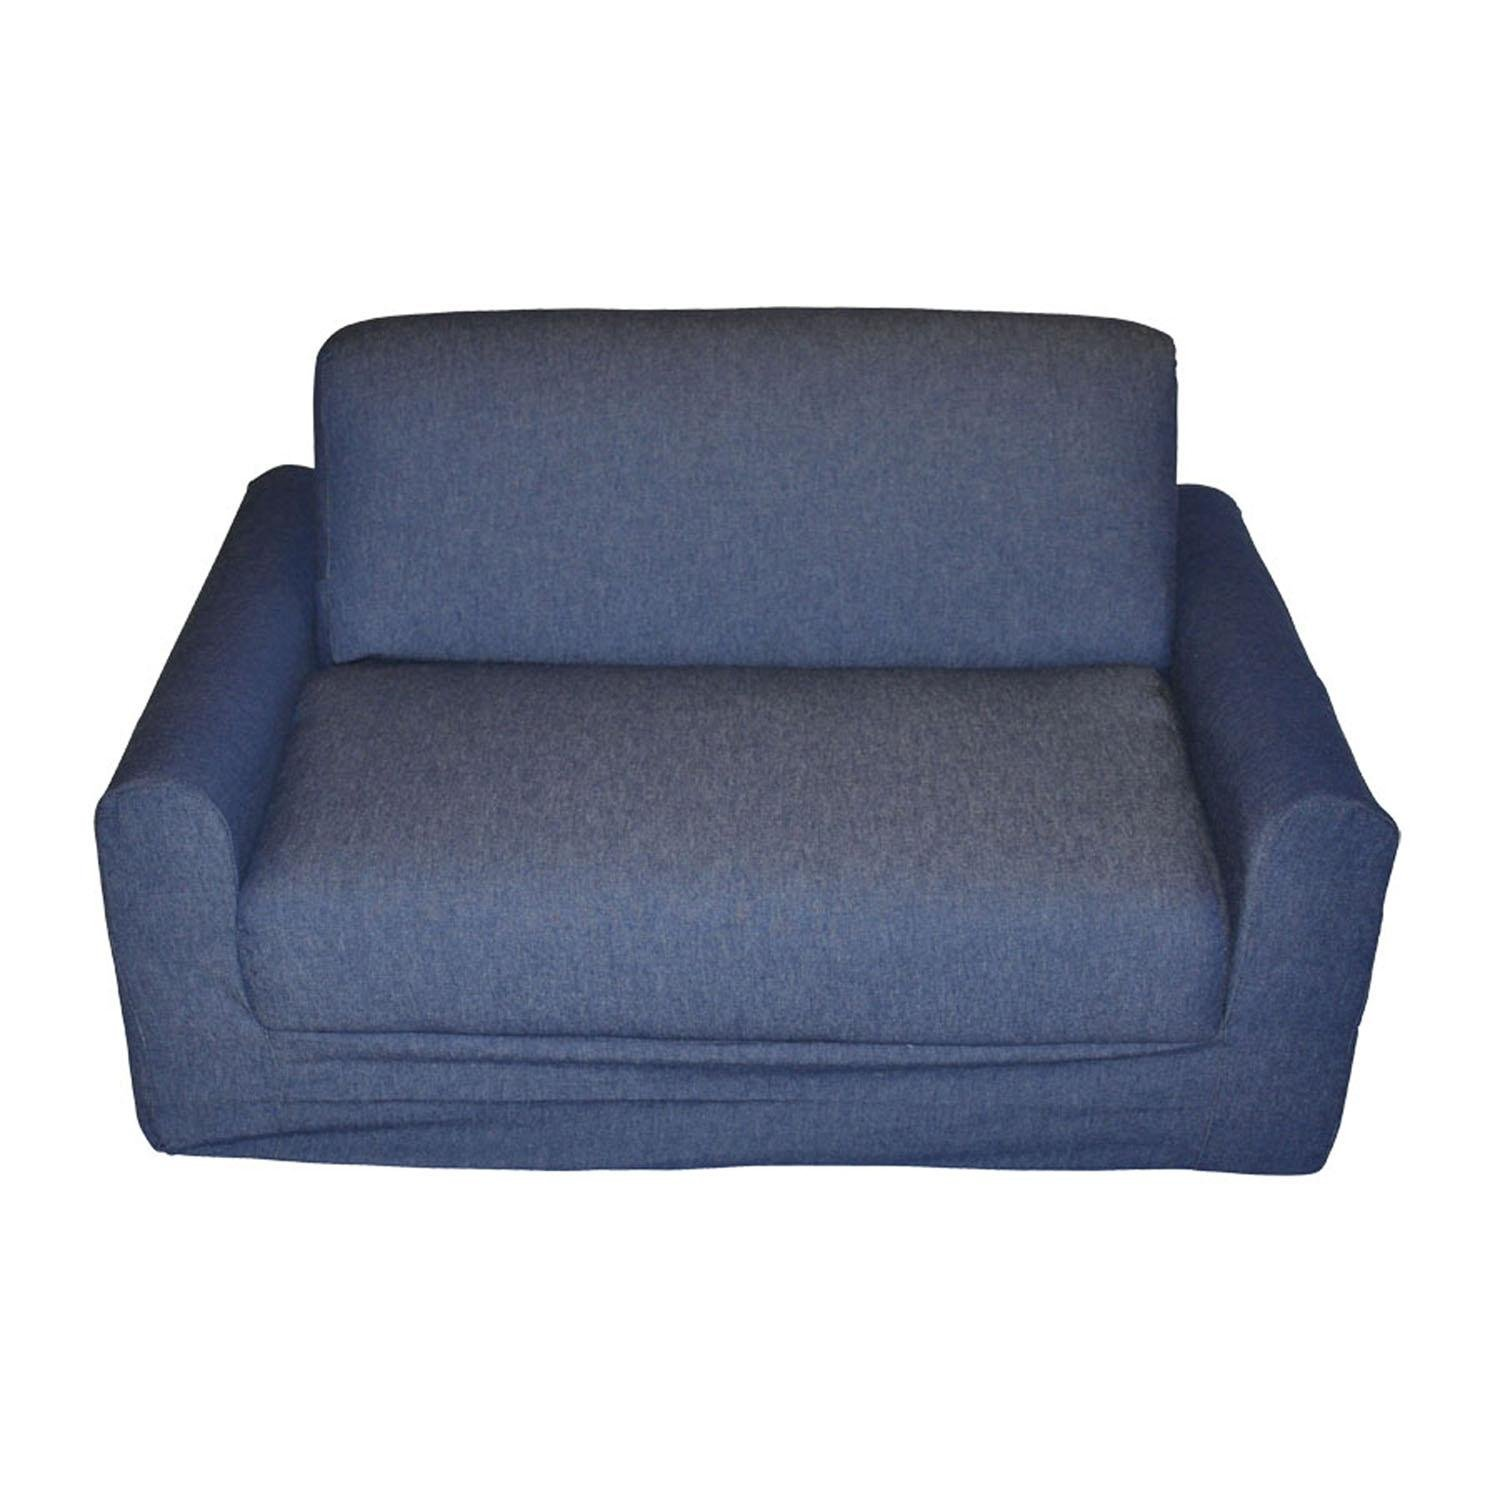 Fun Furnishings Kid's Sofa Sleeper, Denim